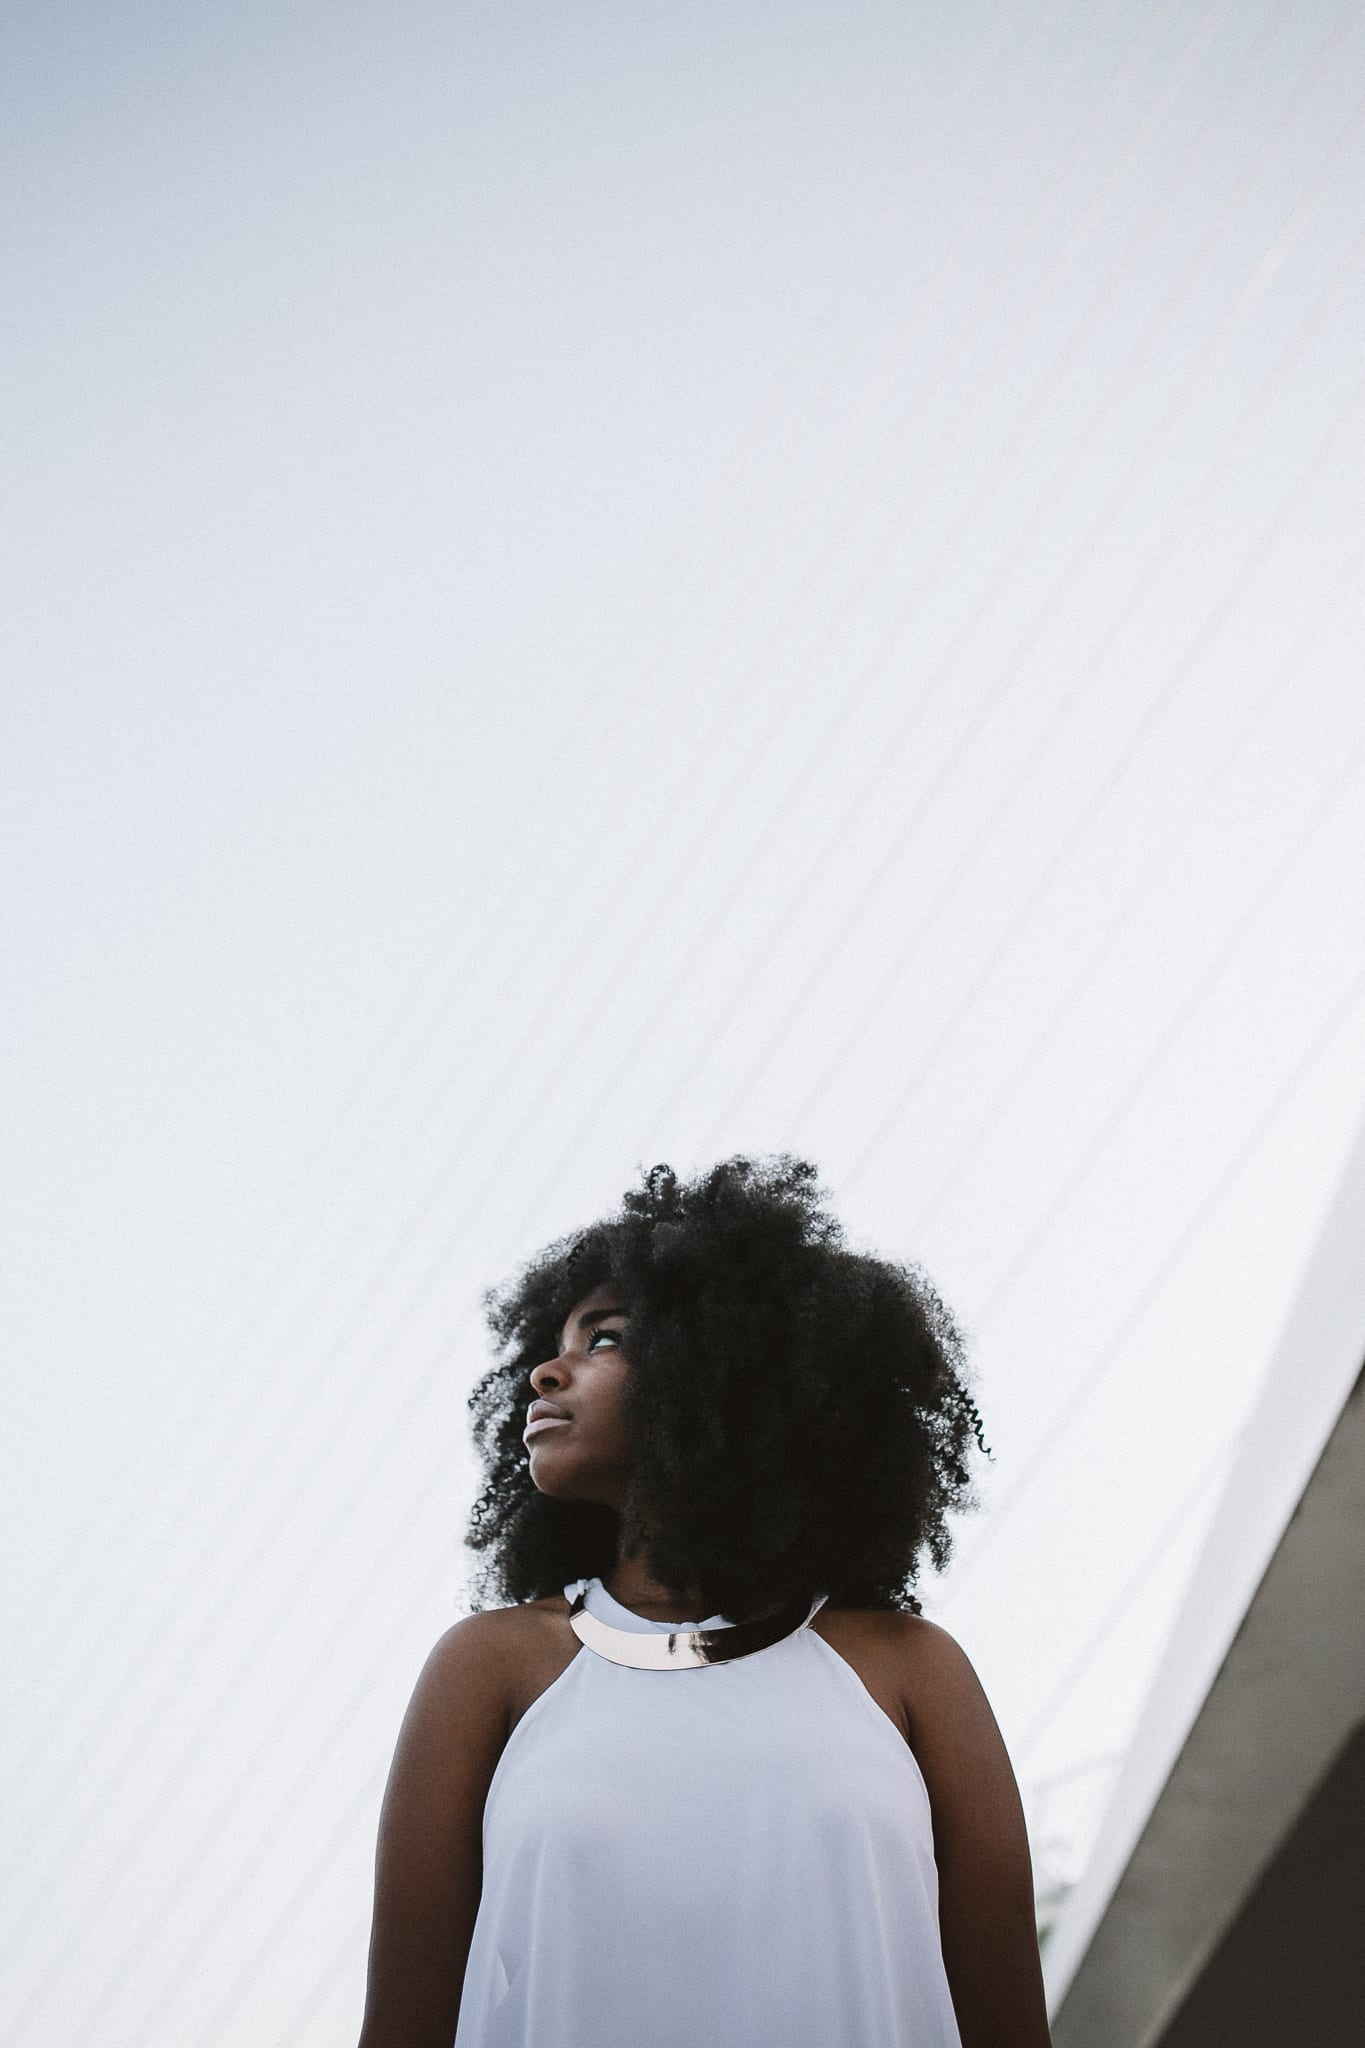 sundial-bridge-california-portrait-photographer-black-afro-queen-birthday-7